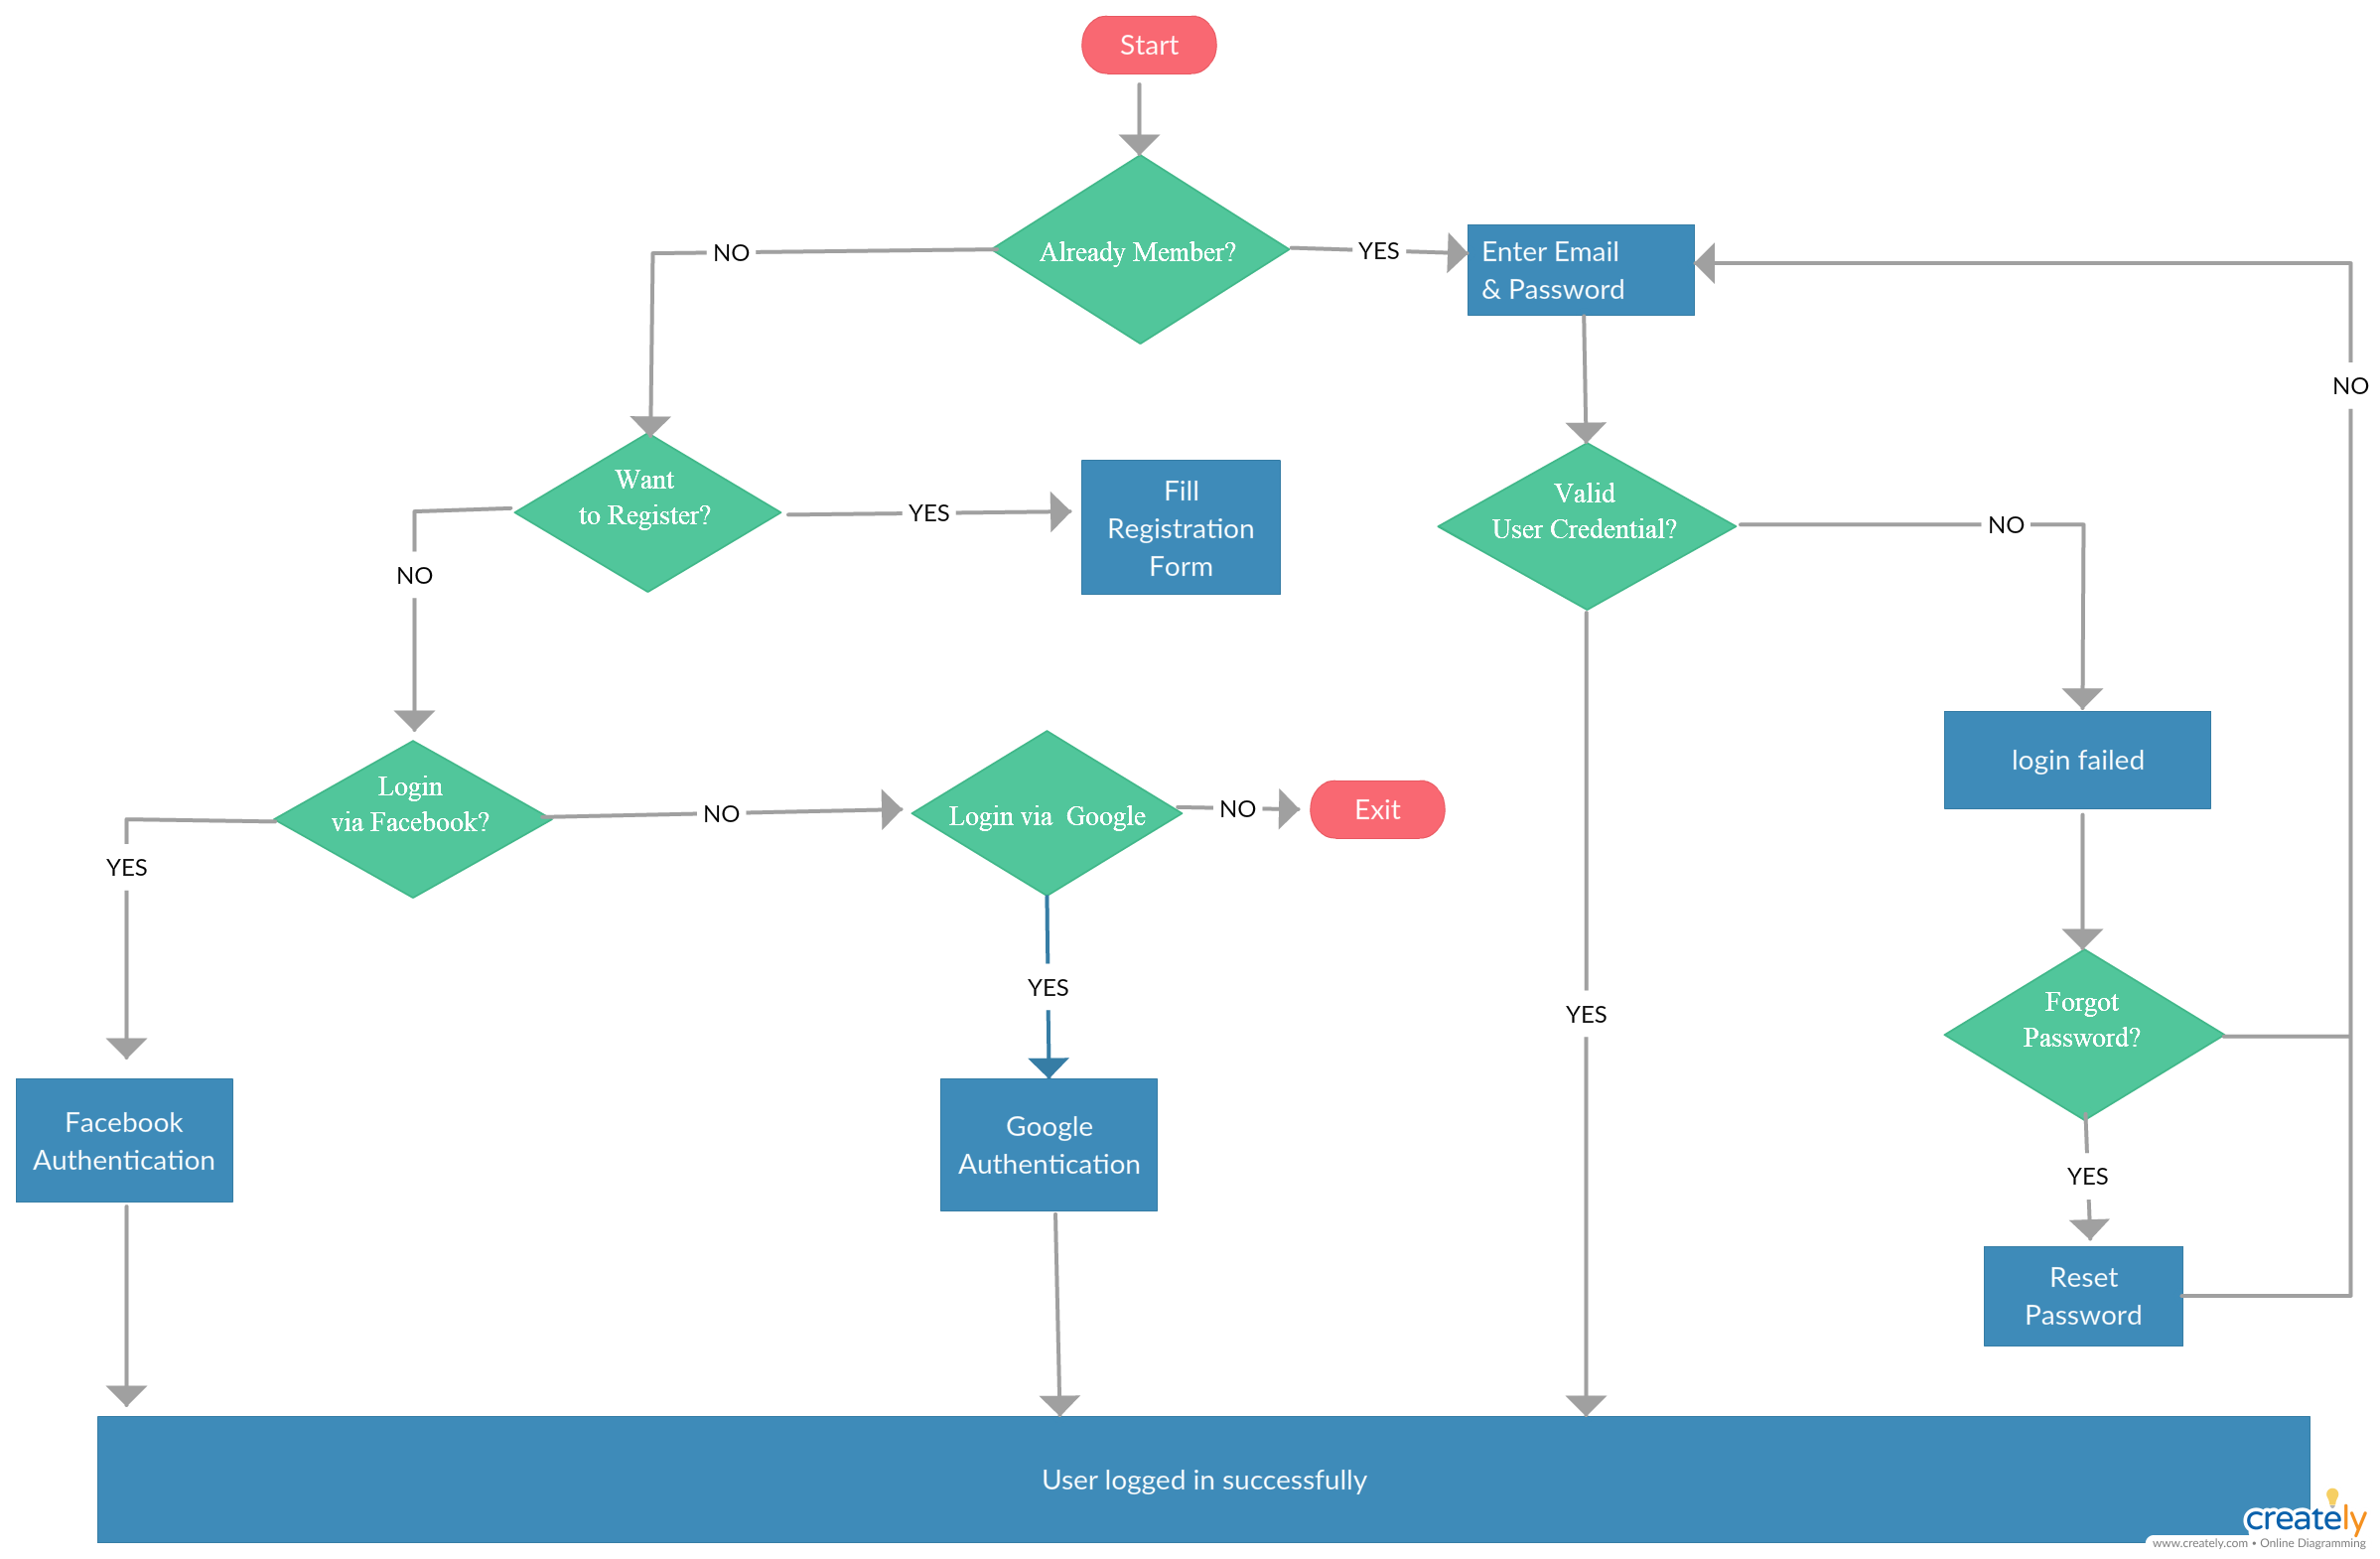 hight resolution of user registration process flow diagram user registration process flow diagram is how a user will do signup or log in using facebook google or email to